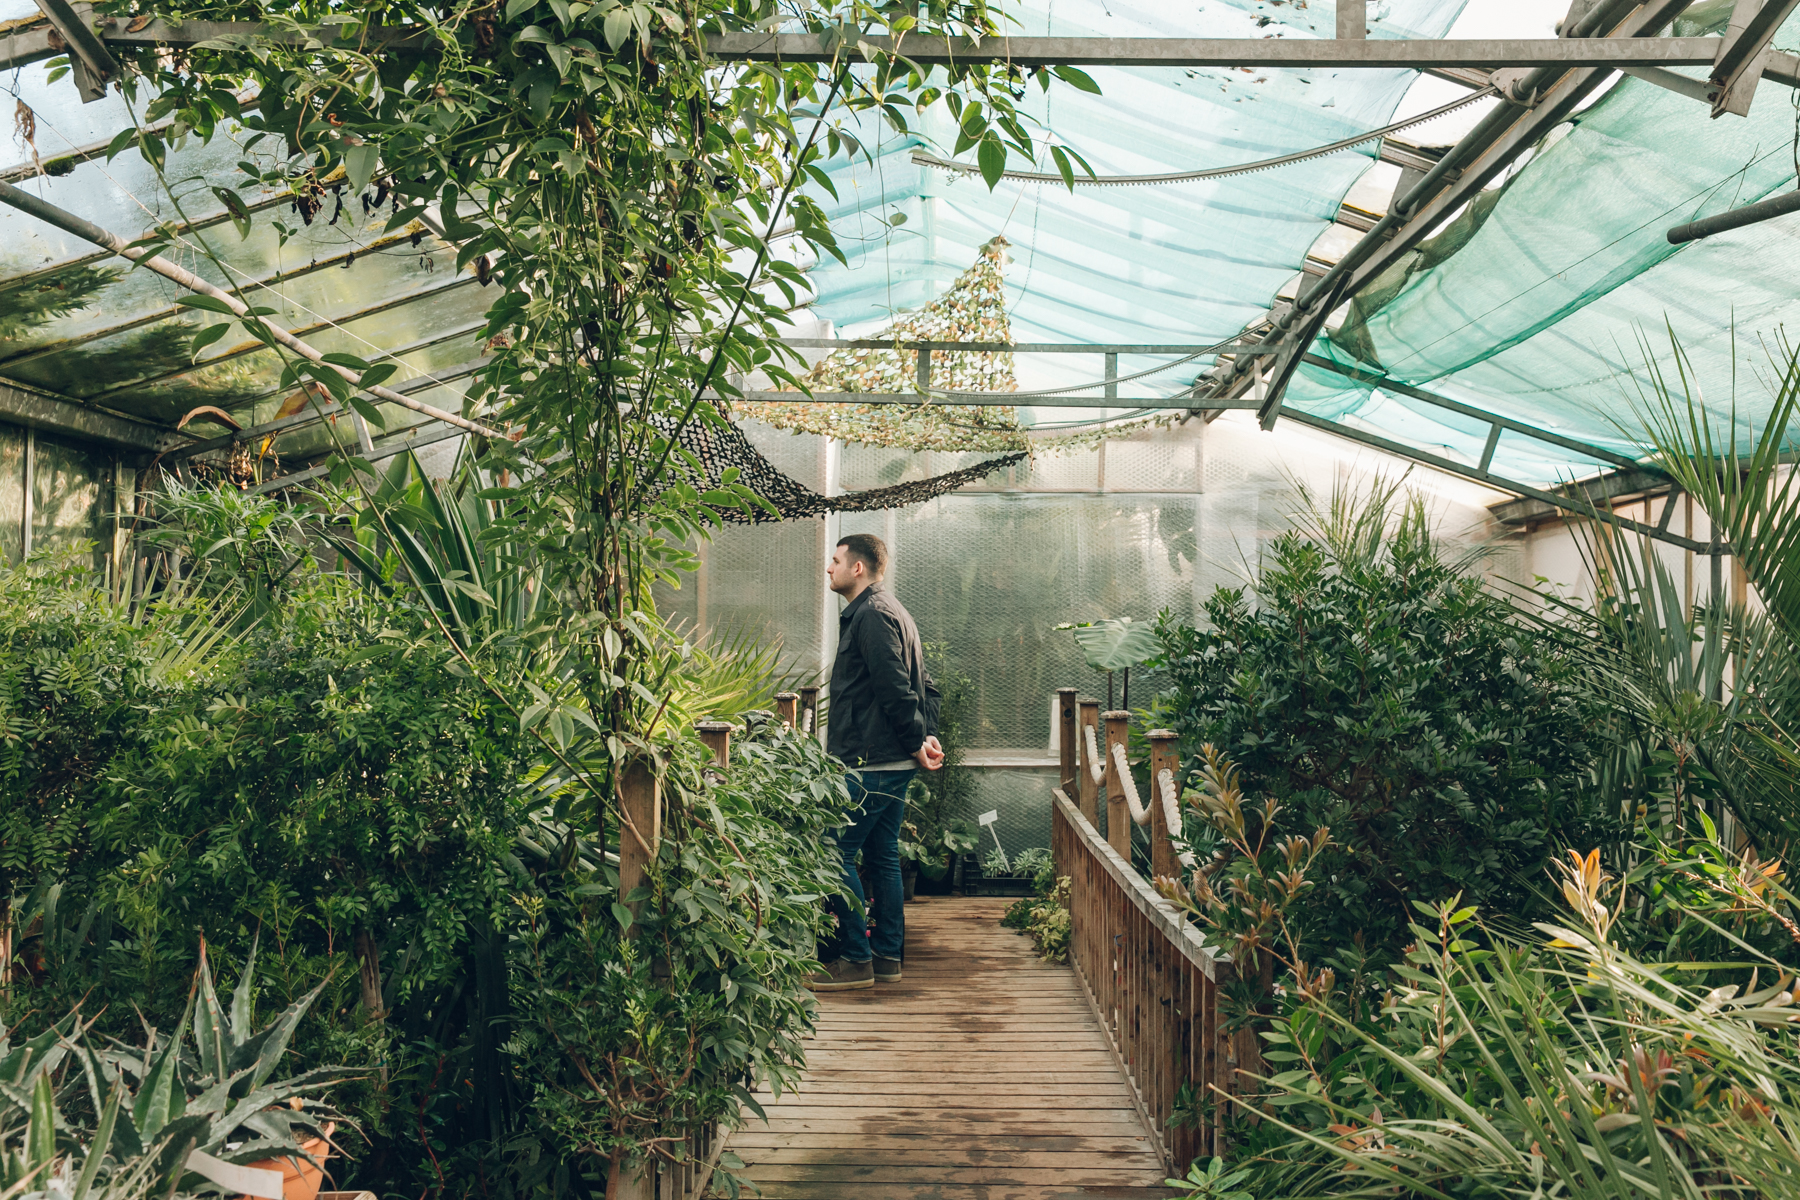 Exploring the plants in the greenhouse at Urban Jungle near Norwich.